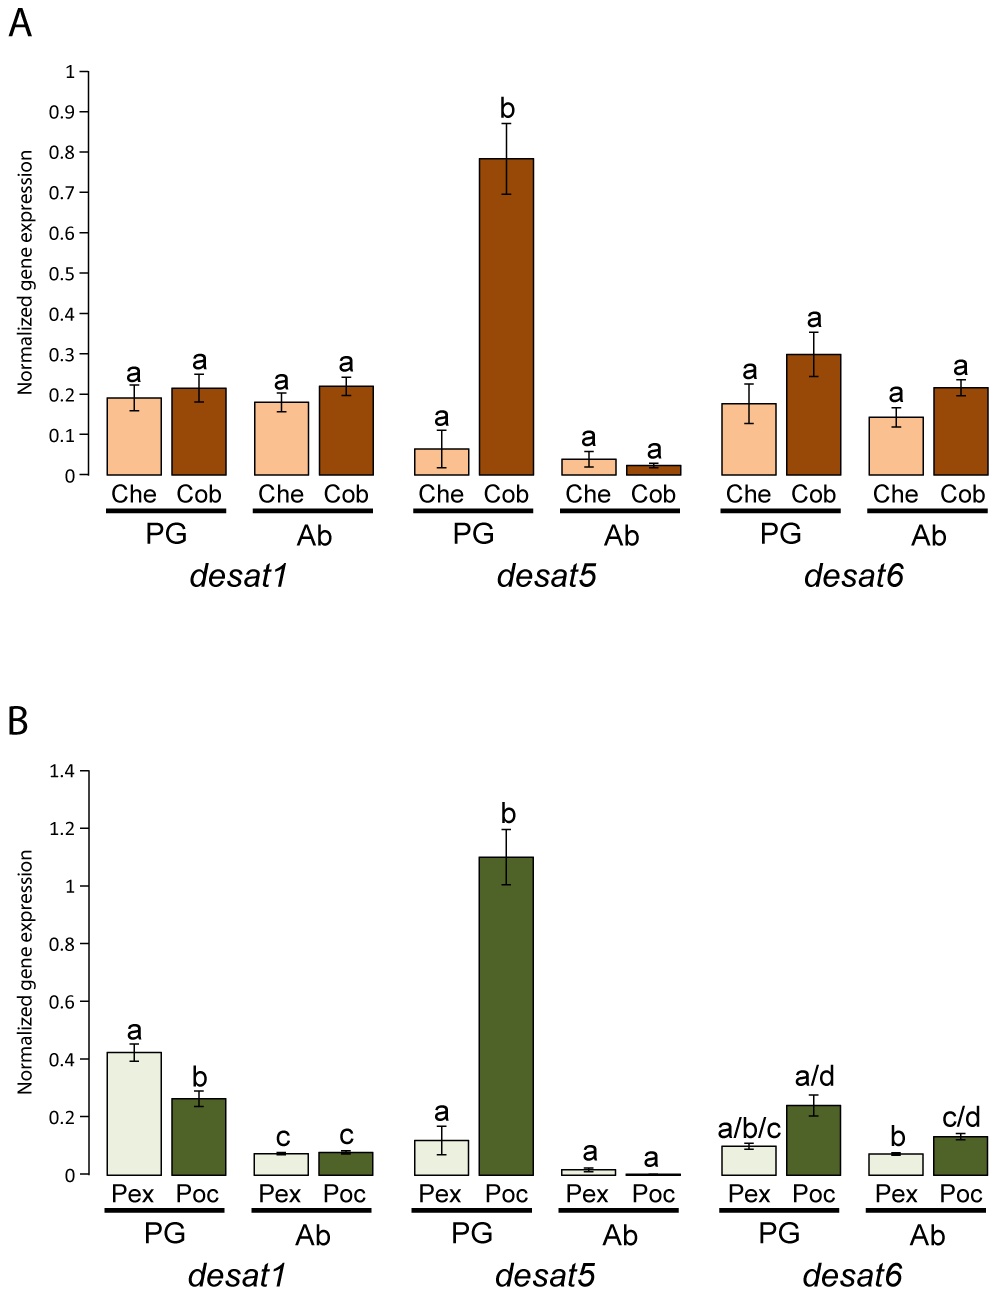 Gene expression of <i>desat1</i>, <i>desat5</i>, and <i>desat6</i> in the pheromone gland and abdomen of virgin females in <i>Ctenopseustis obliquana</i>, <i>C. herana</i>, <i>P. excessana</i>, and <i>P. octo</i> relative to housekeeper genes.